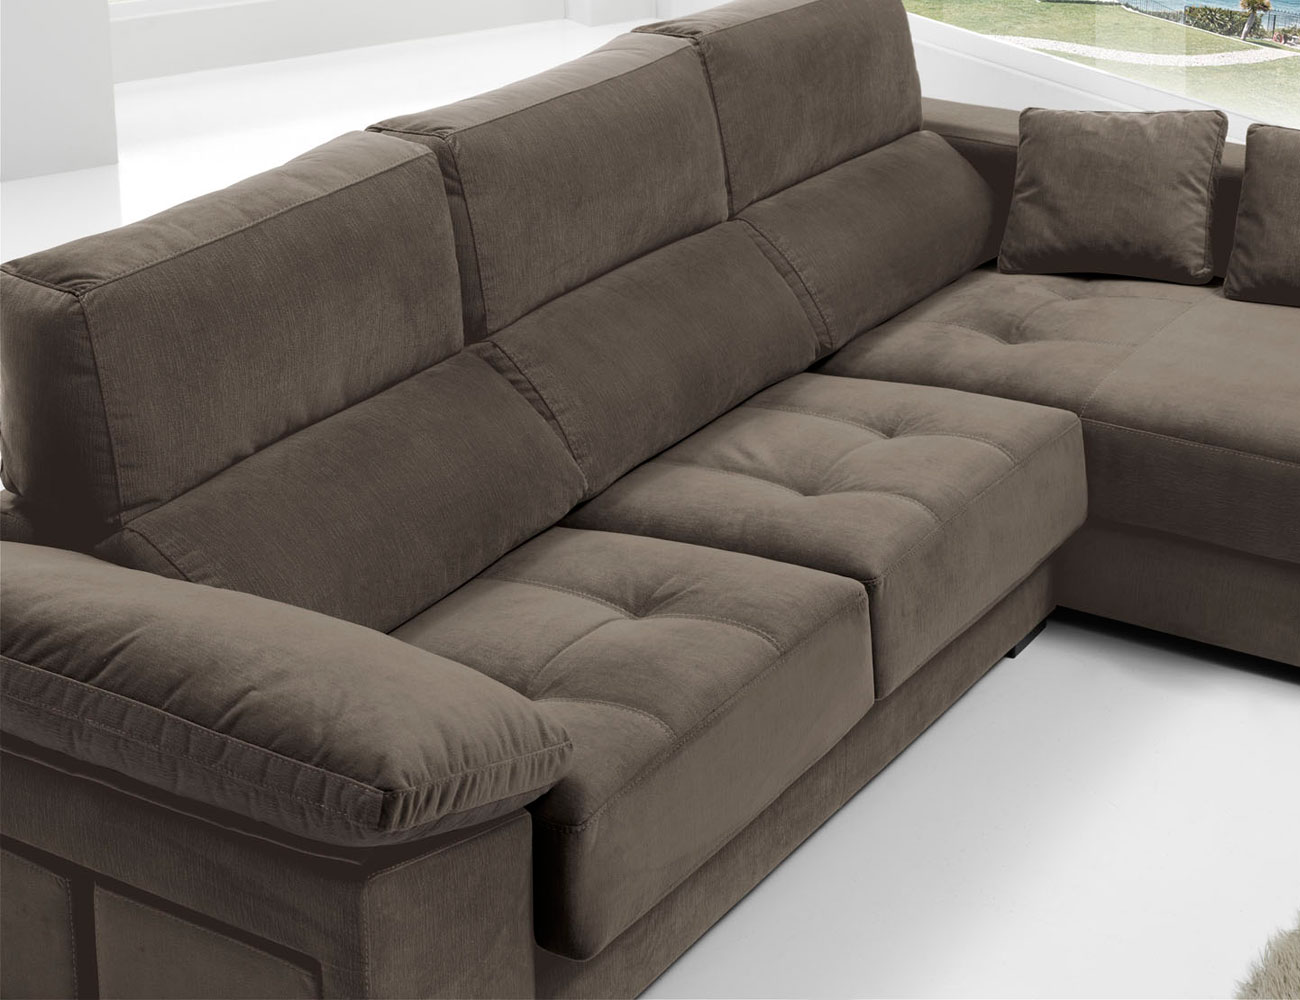 Sofa chaiselongue anti manchas bering pouf 278